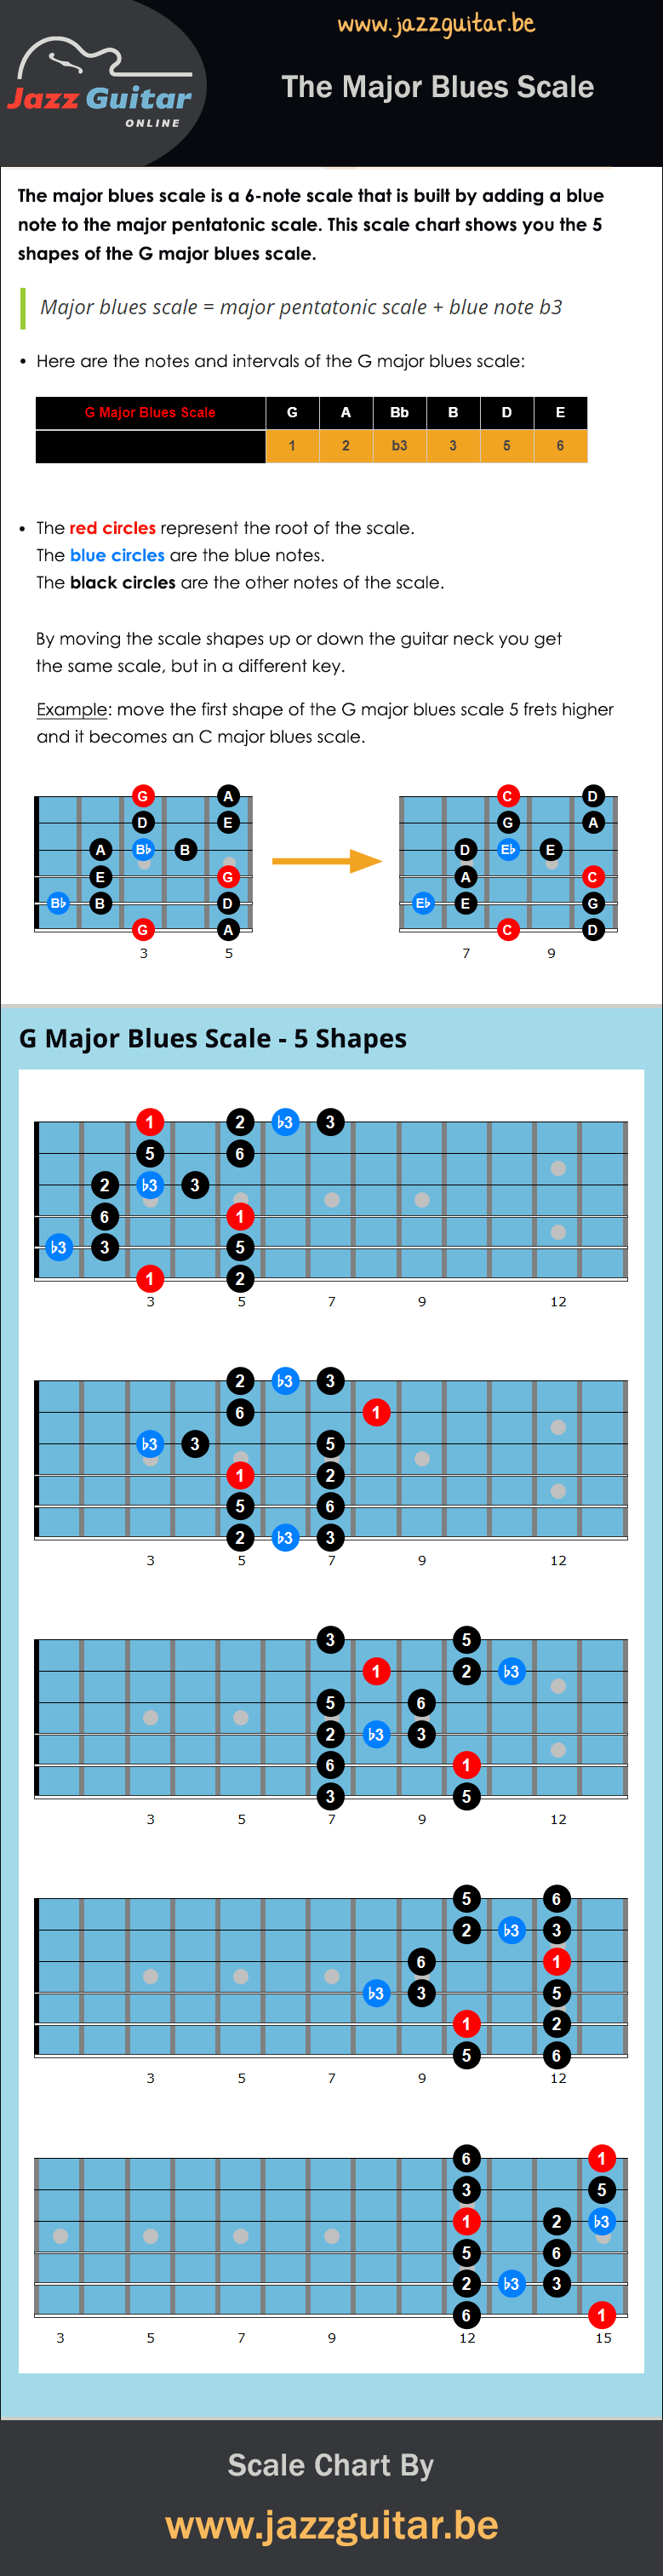 Blues Scales The Major And Minor Blues Scale